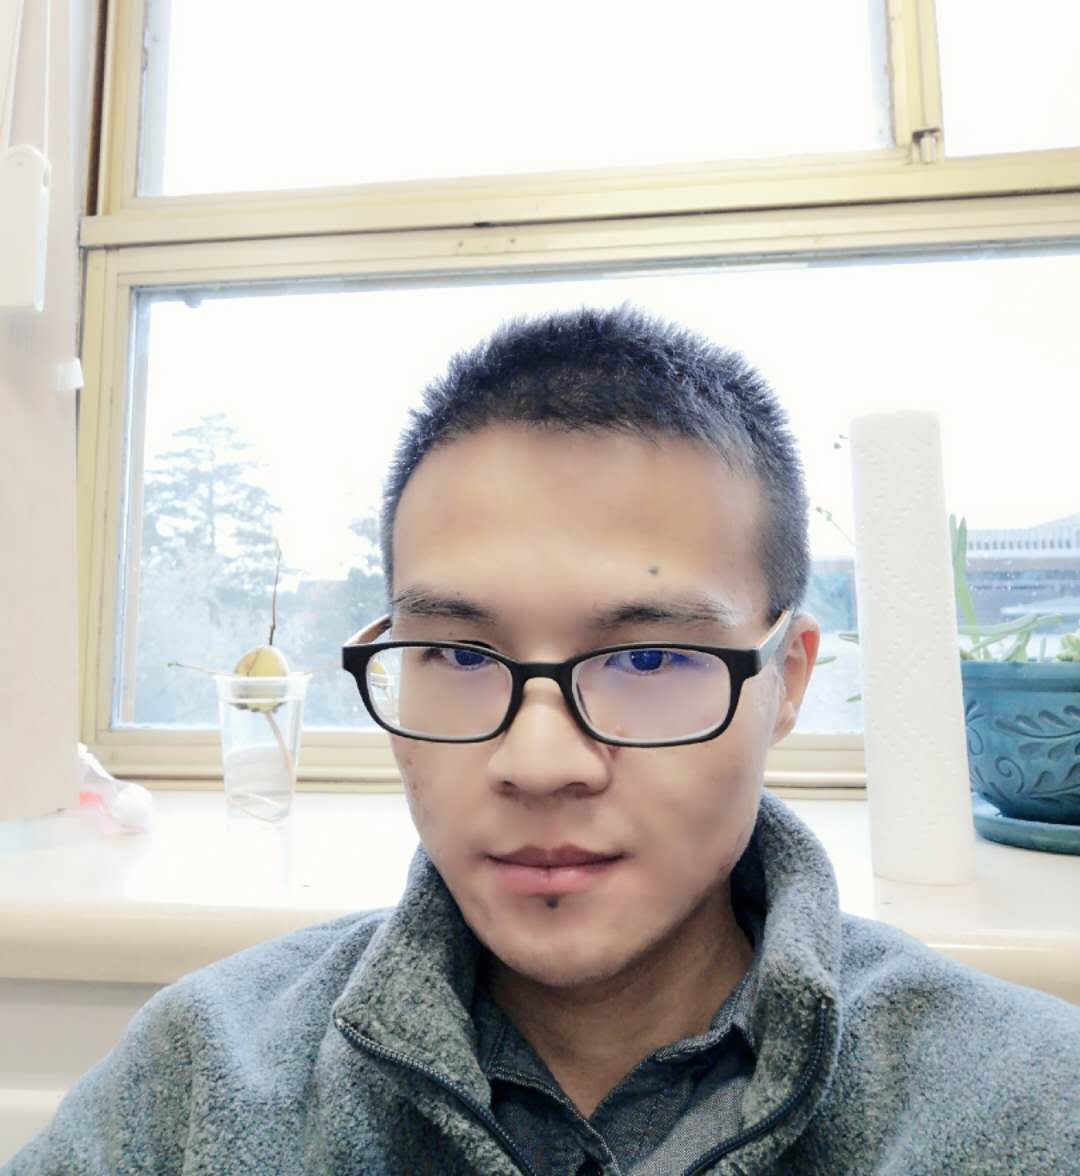 Picture of                                                                                                                                                                                                                                                                                                                                                                                                                                                                                                                                                                                    Mr. Guilin Liu